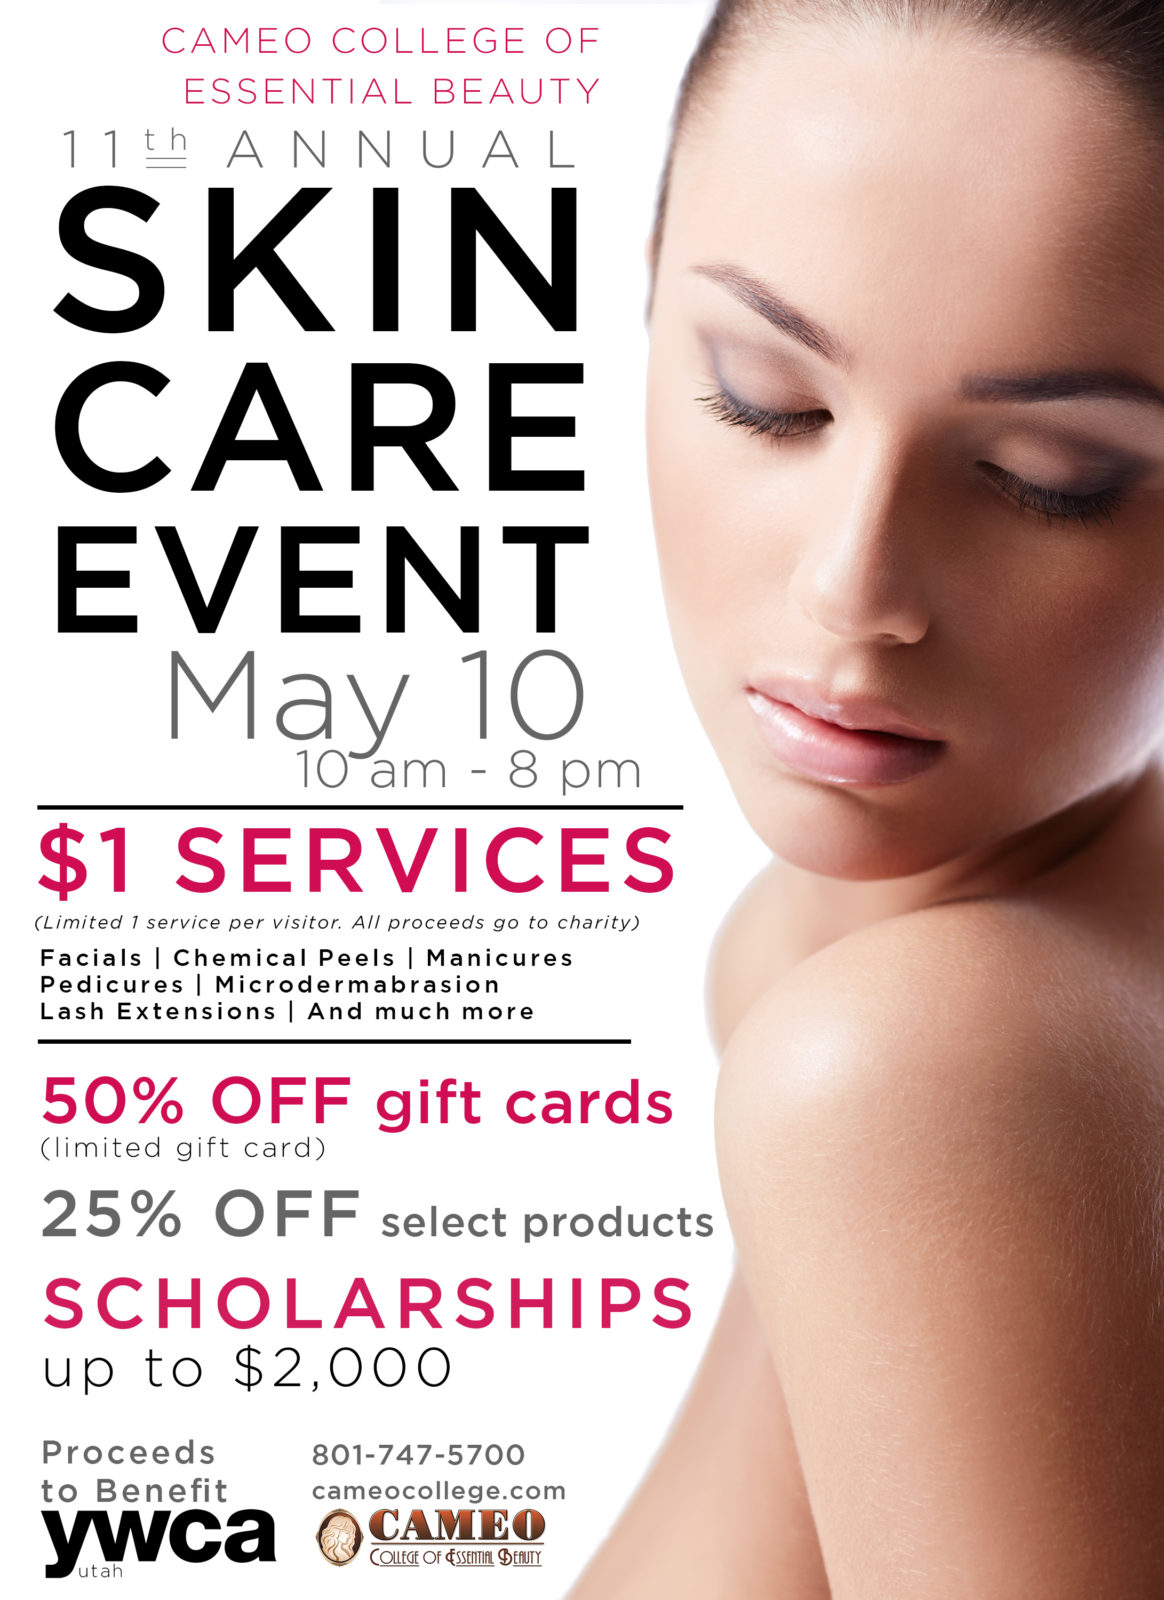 11th Annual Skin Care Event May 10 Cameo College Beauty